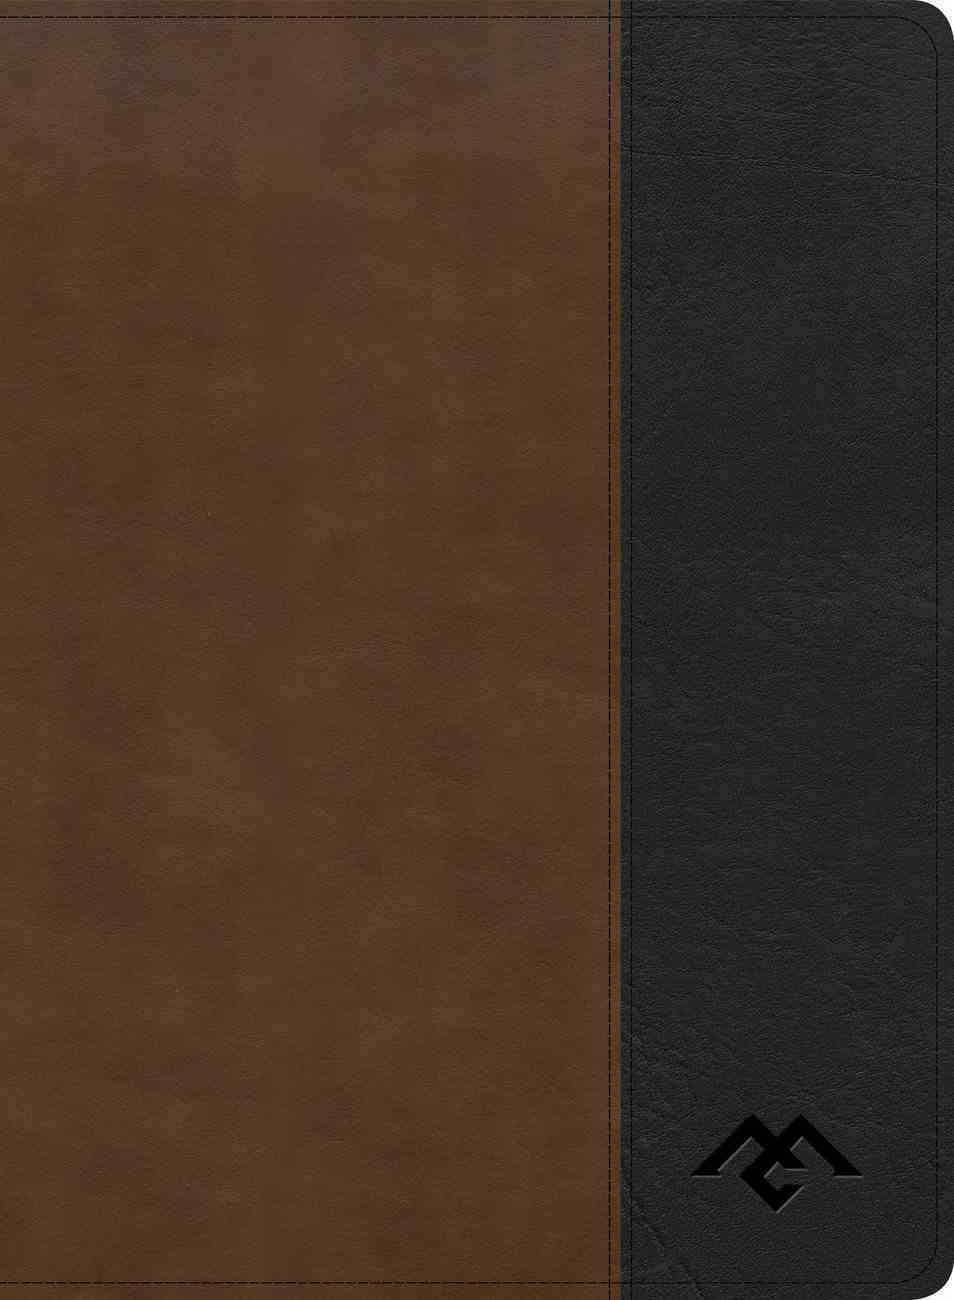 CSB Men of Character Bible Brown/Black (Black Letter Edition) Imitation Leather